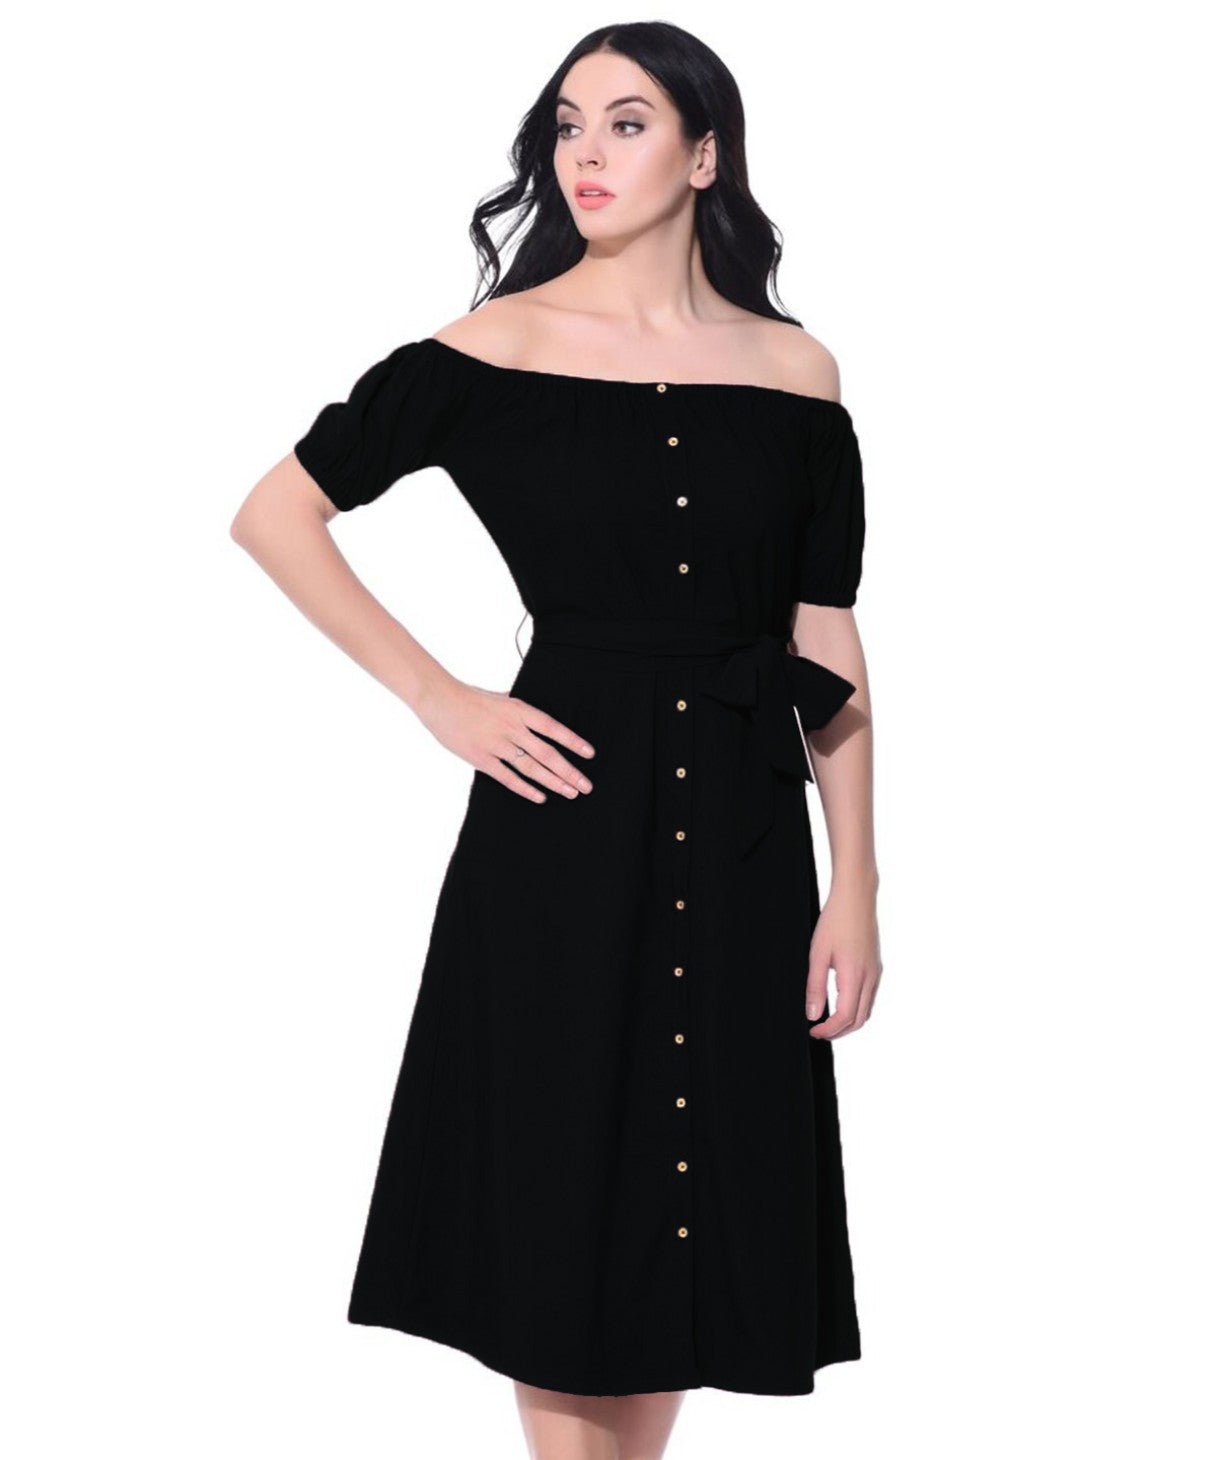 Solid Black Off Shoulder Buttoned Down Dress - Uptownie